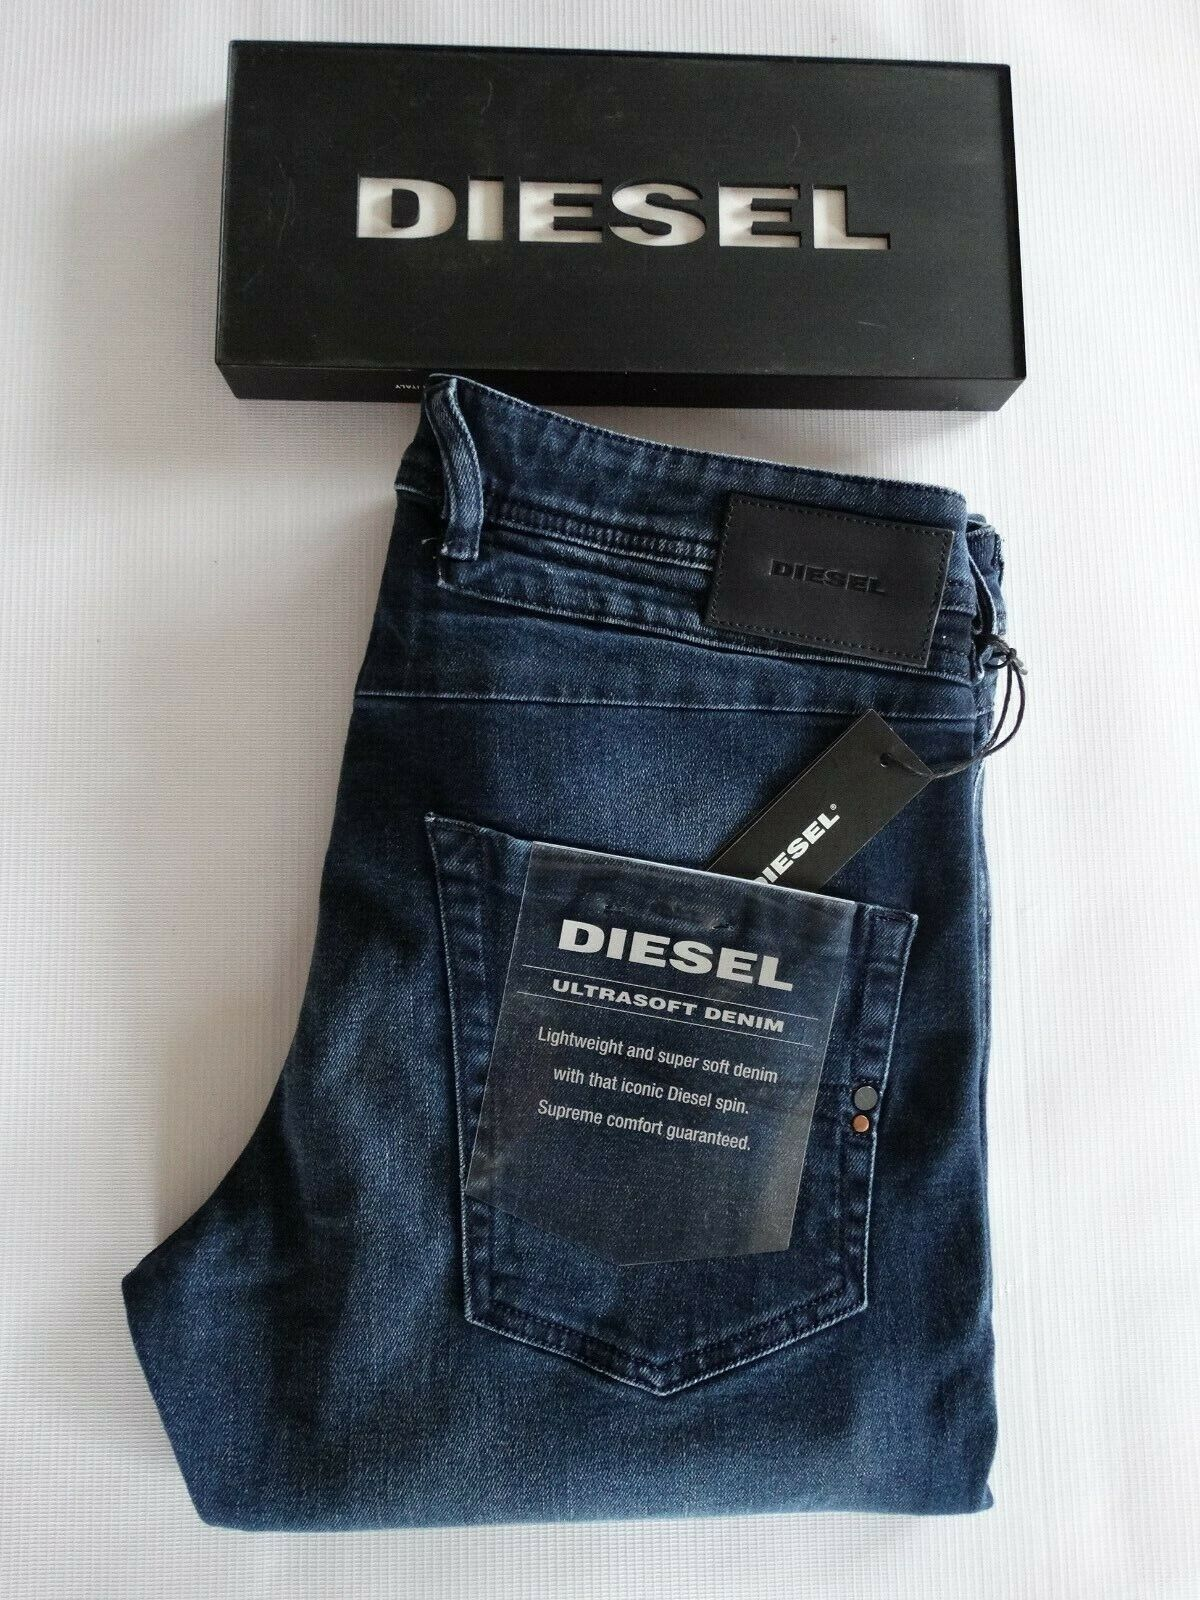 DIESEL Jeans BELTHER-Slim Fit - 087AS (STRETCH) - Nuovo con Etichetta